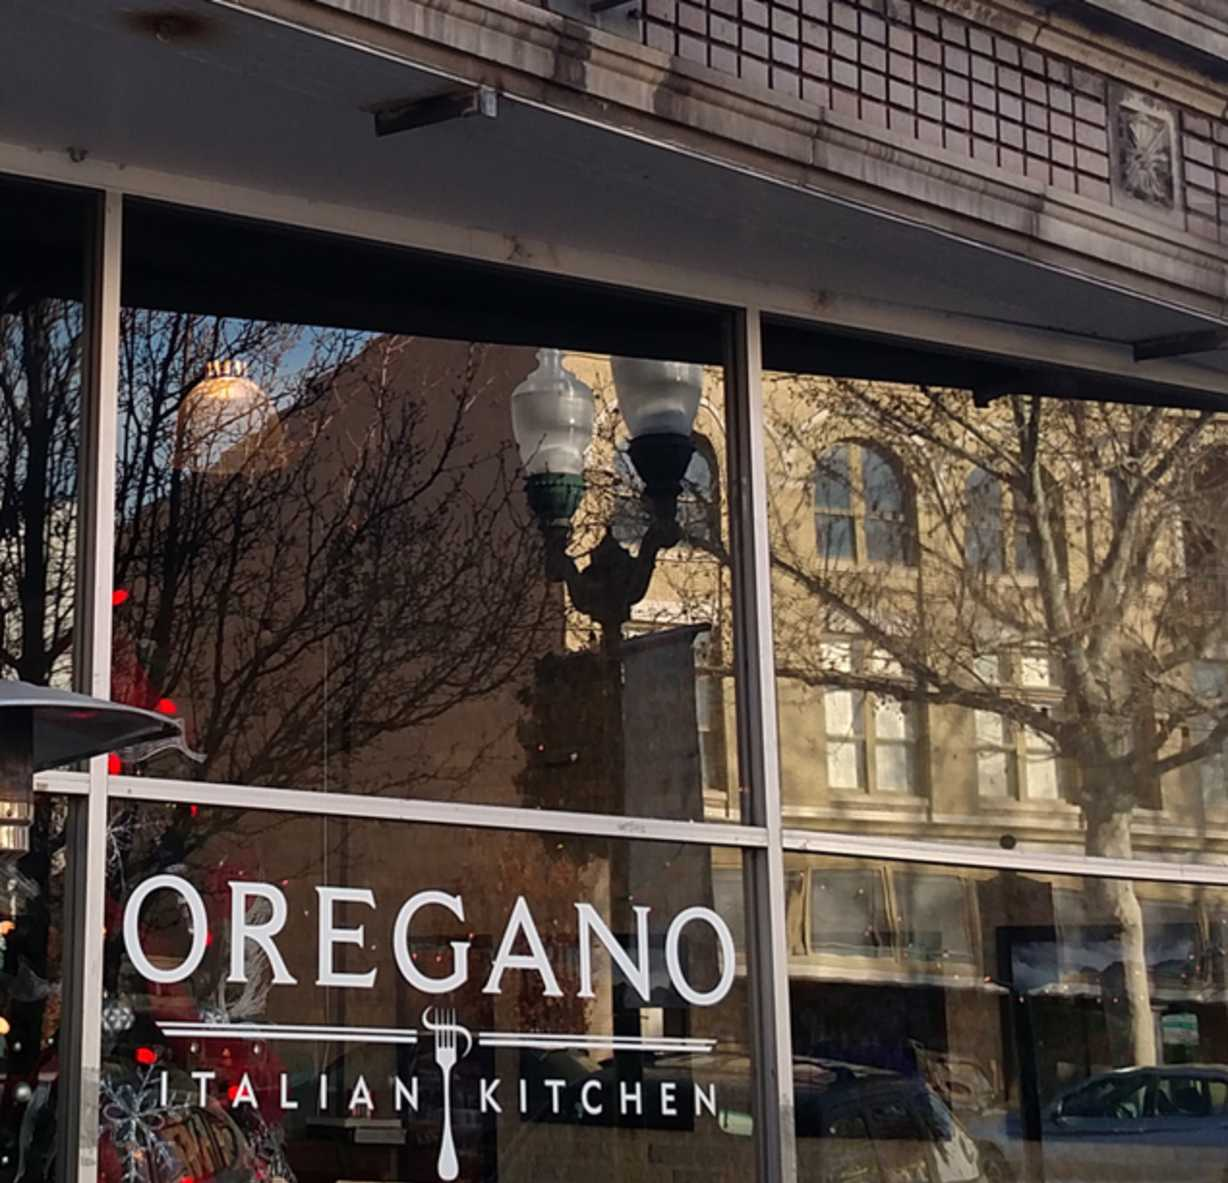 Oregano Italian Kitchen - Provo, Utah